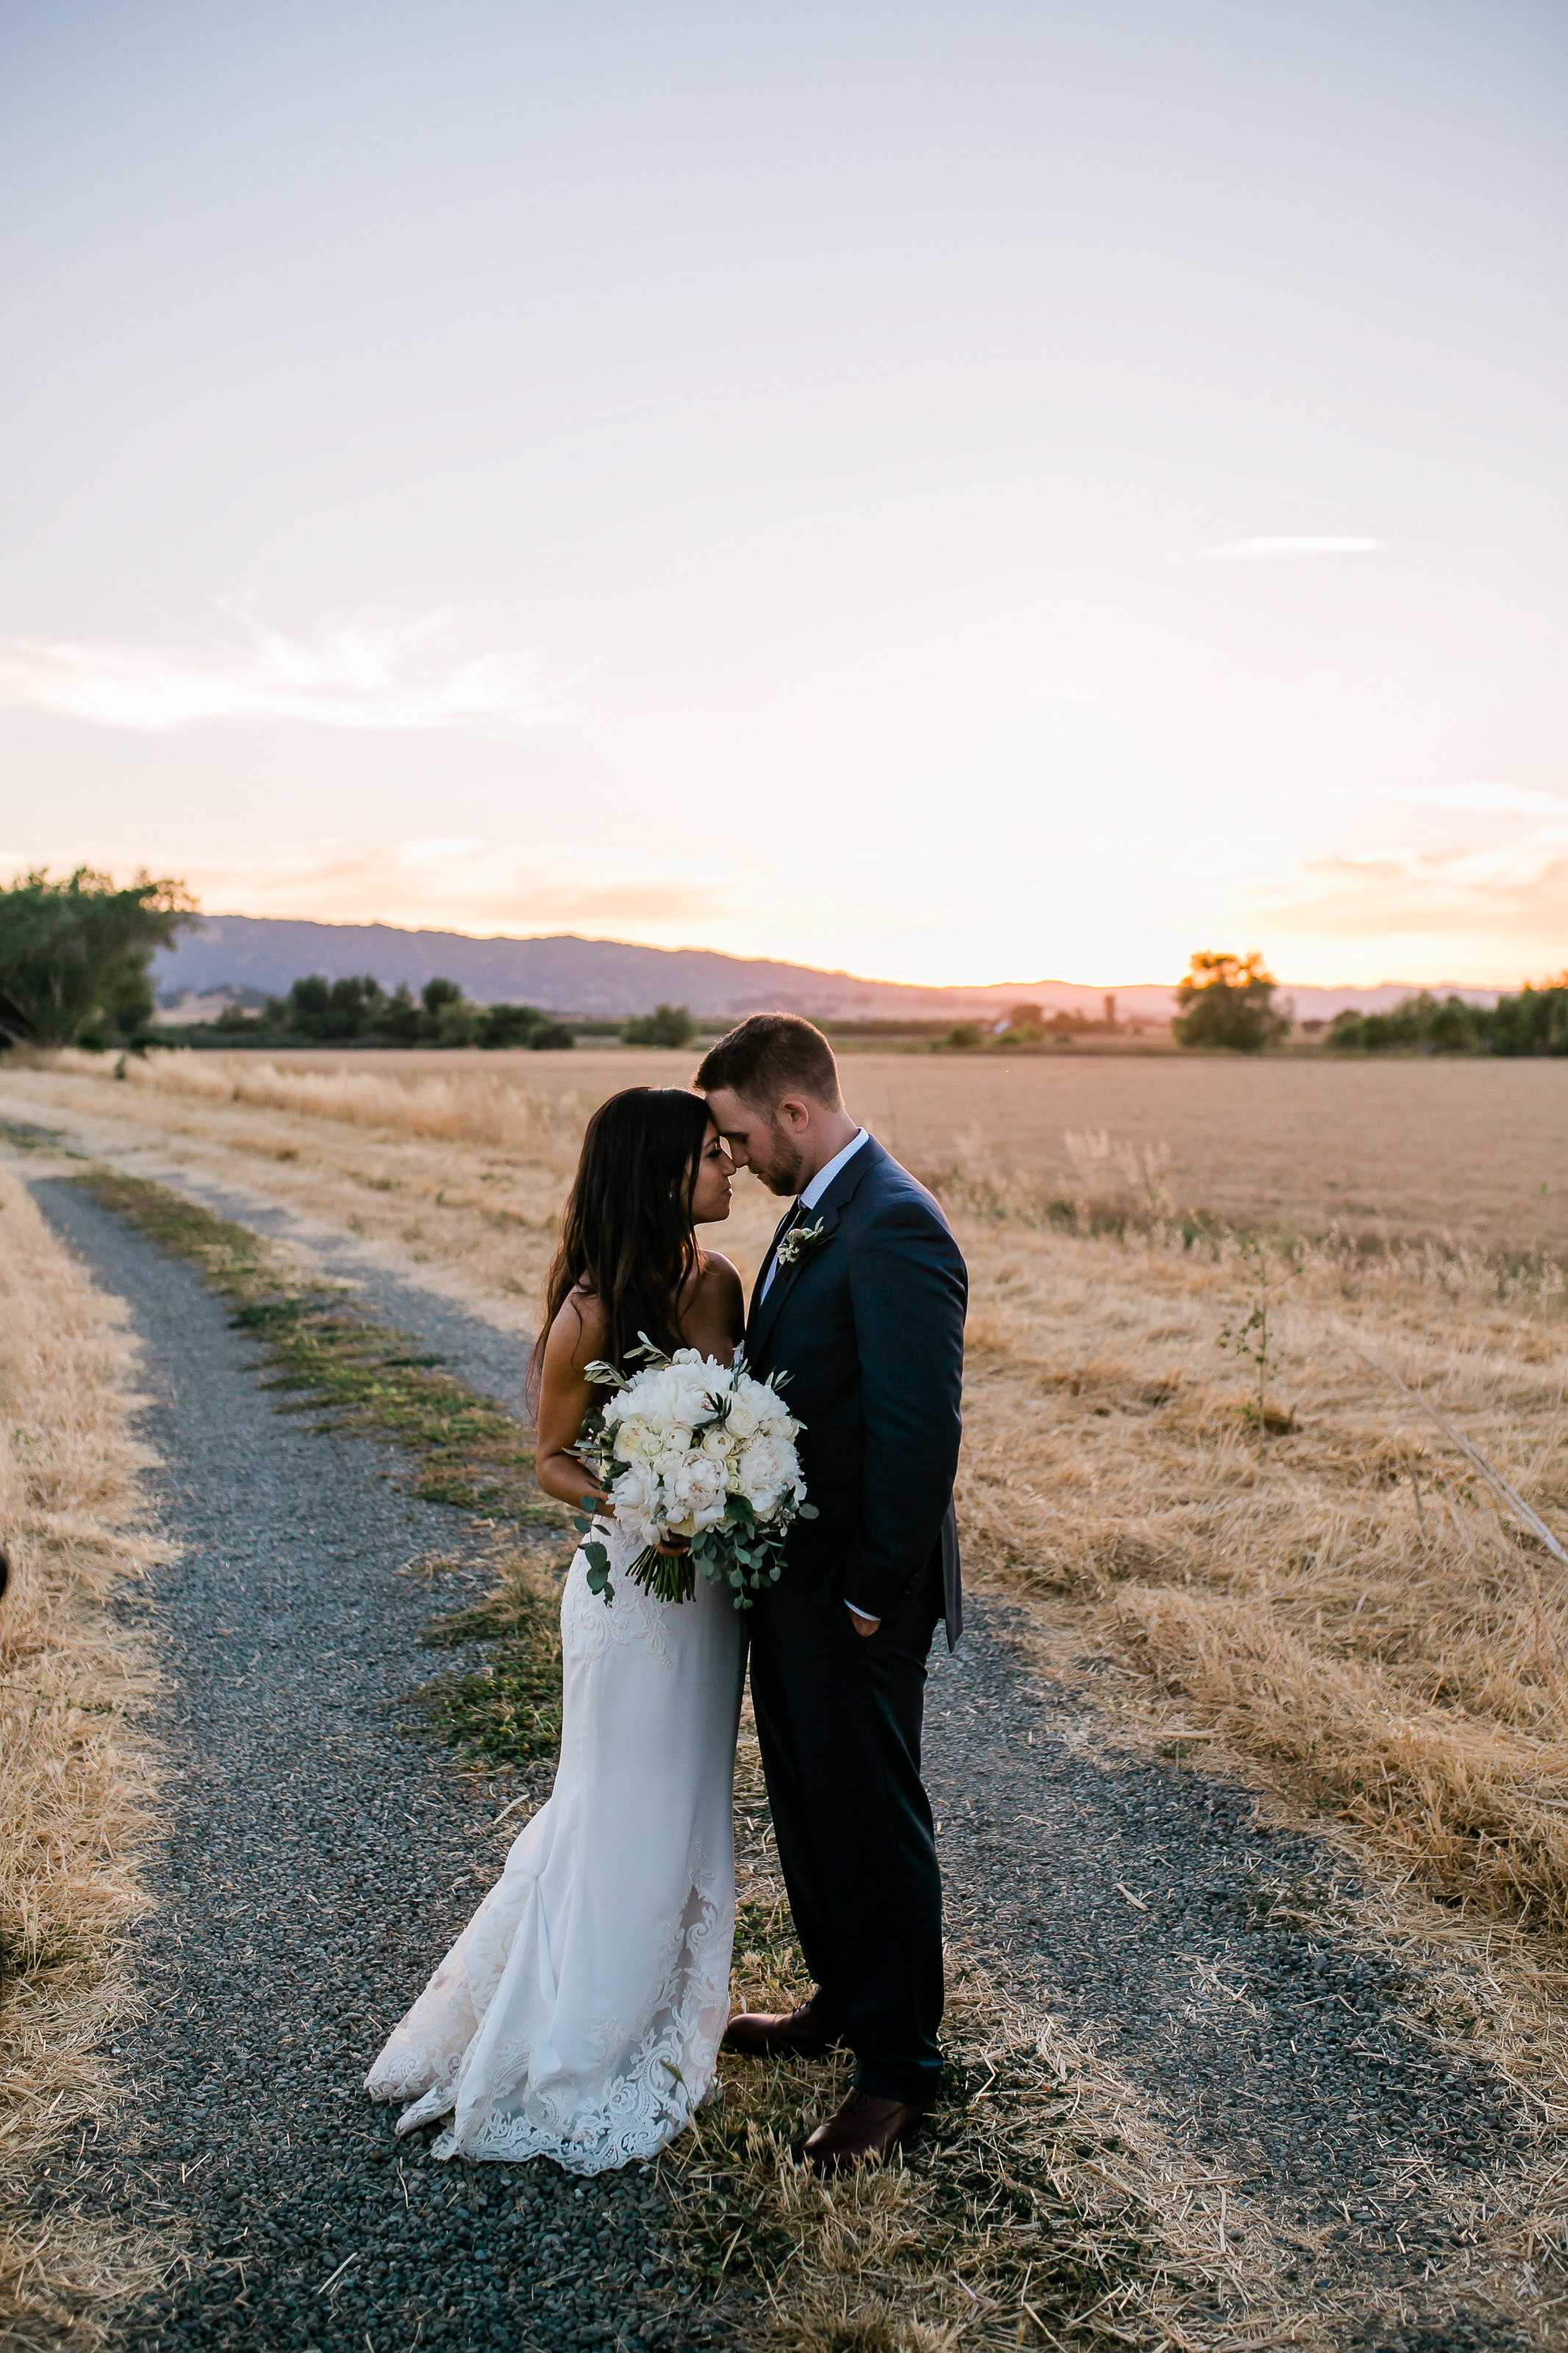 Park Winters Summer Wedding | Country Wedding | Farm Wedding | Bride and Groom Portrait